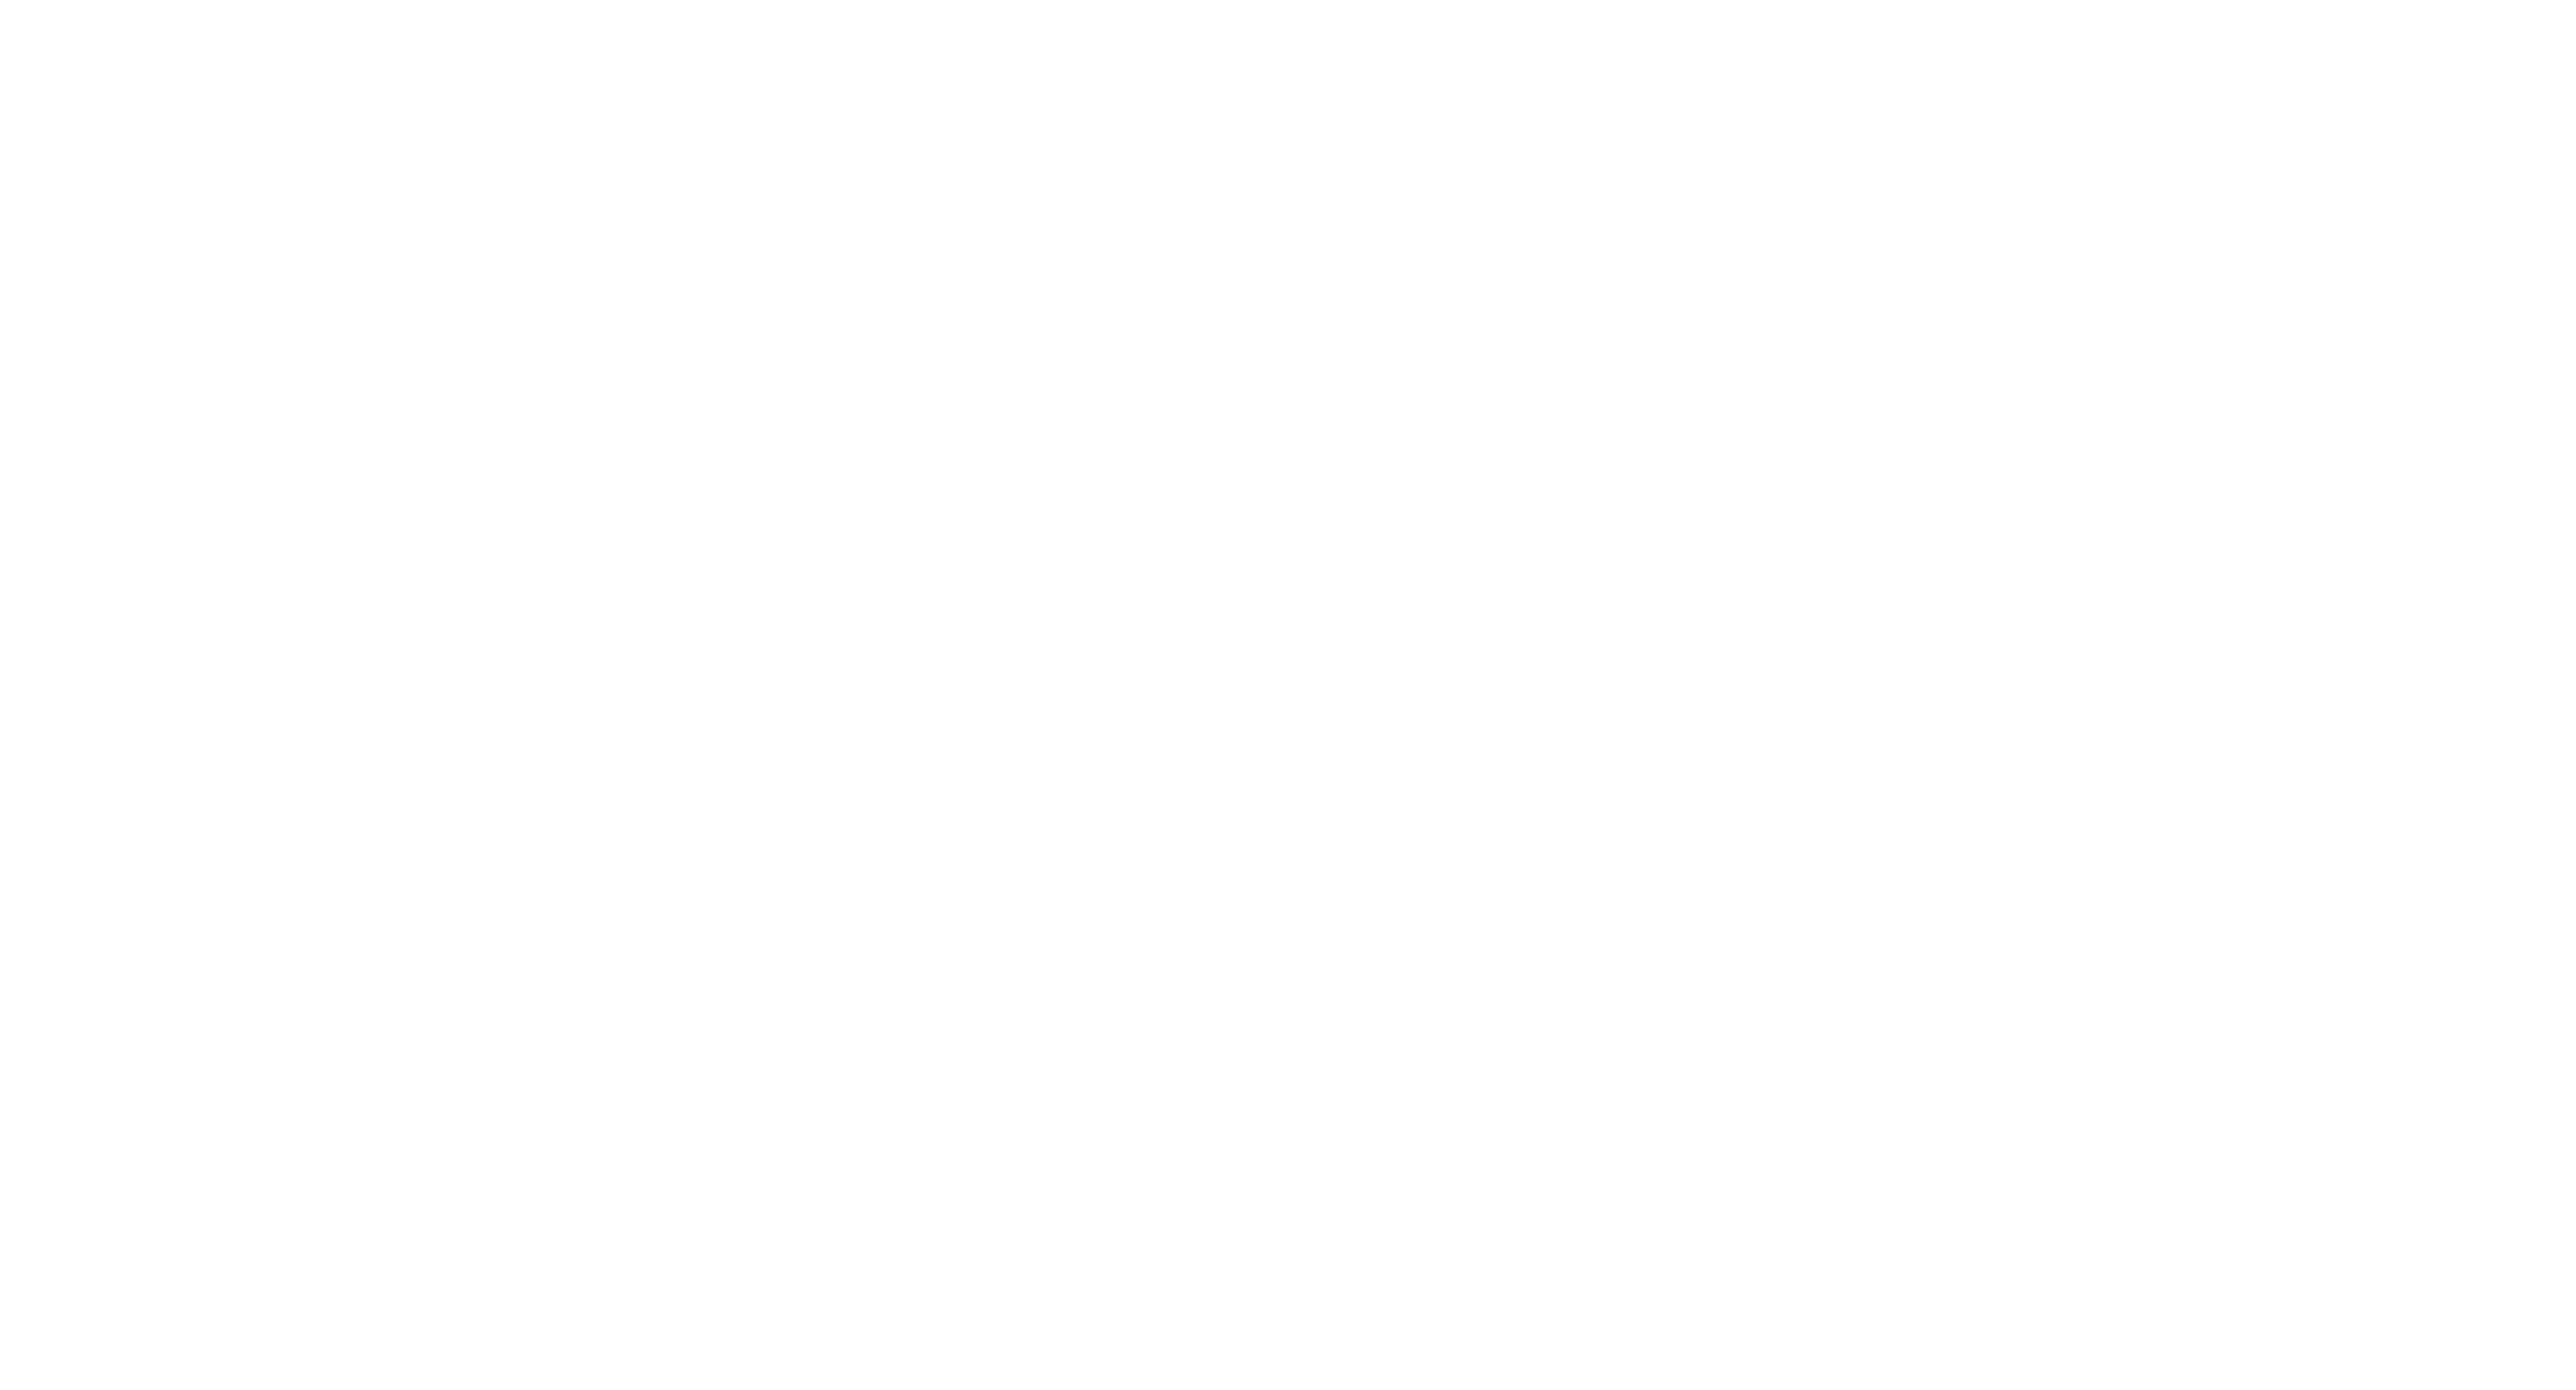 The Fylde Liberal Democrats cover the Fylde Westminster Constituency. If you live in Fylde, please contact us with any issues or concerns you have.